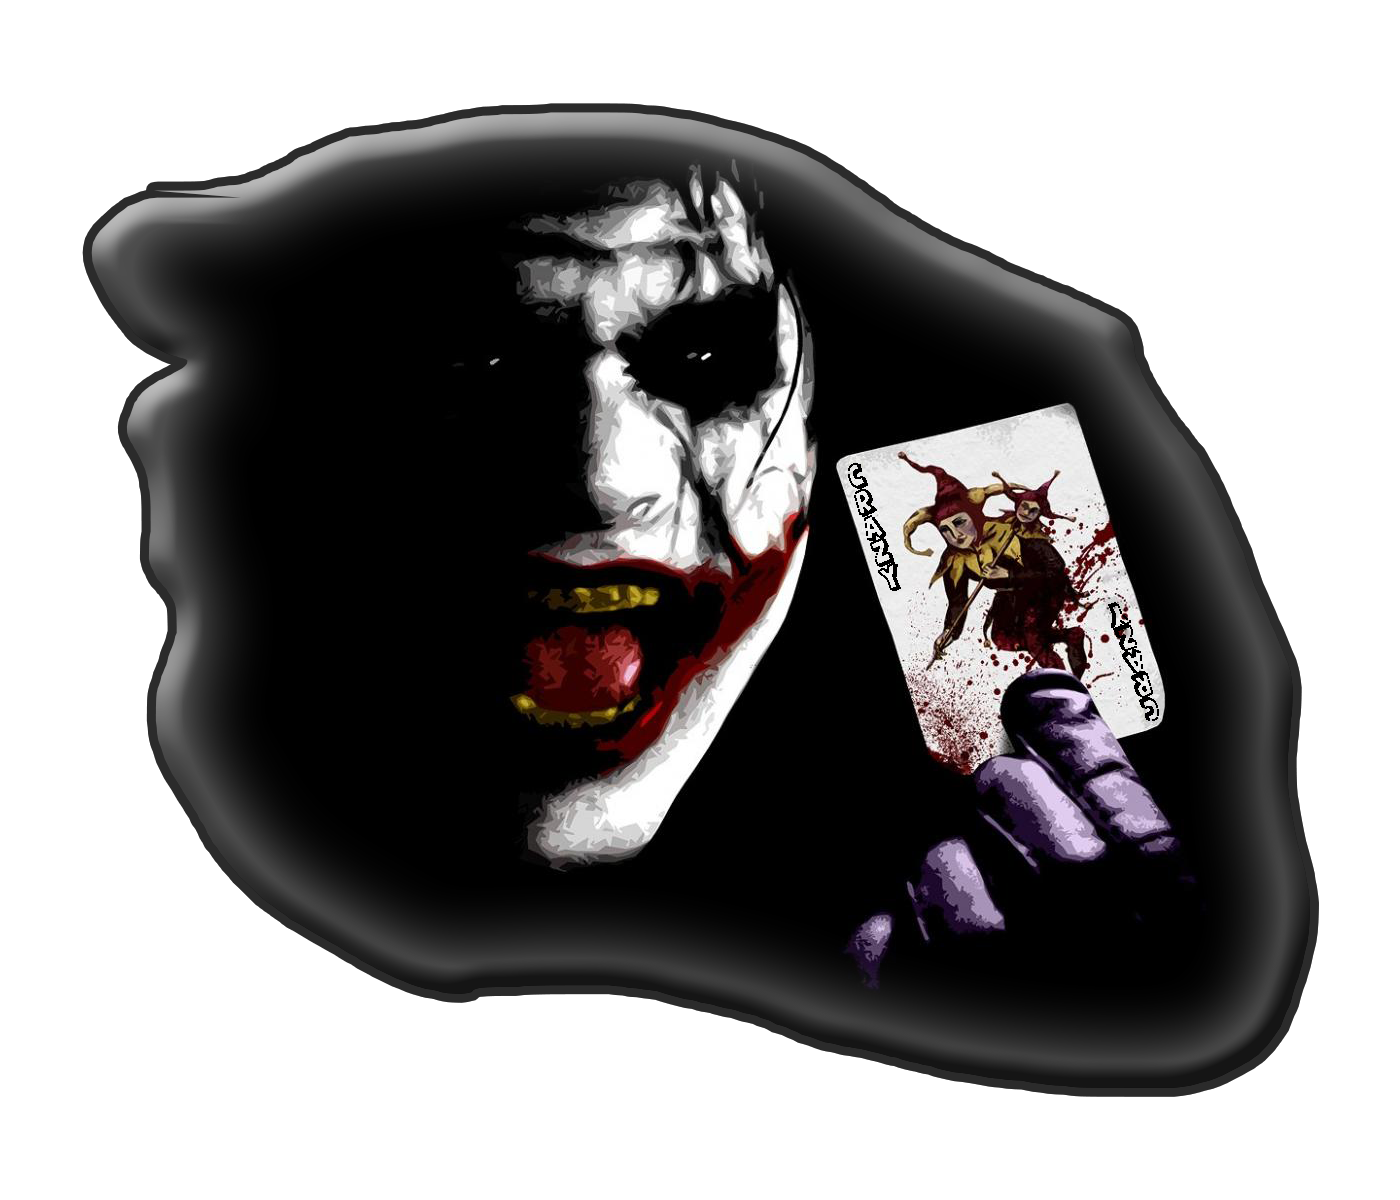 Joker Iphone Wallpaper Posted By Michelle Thompson